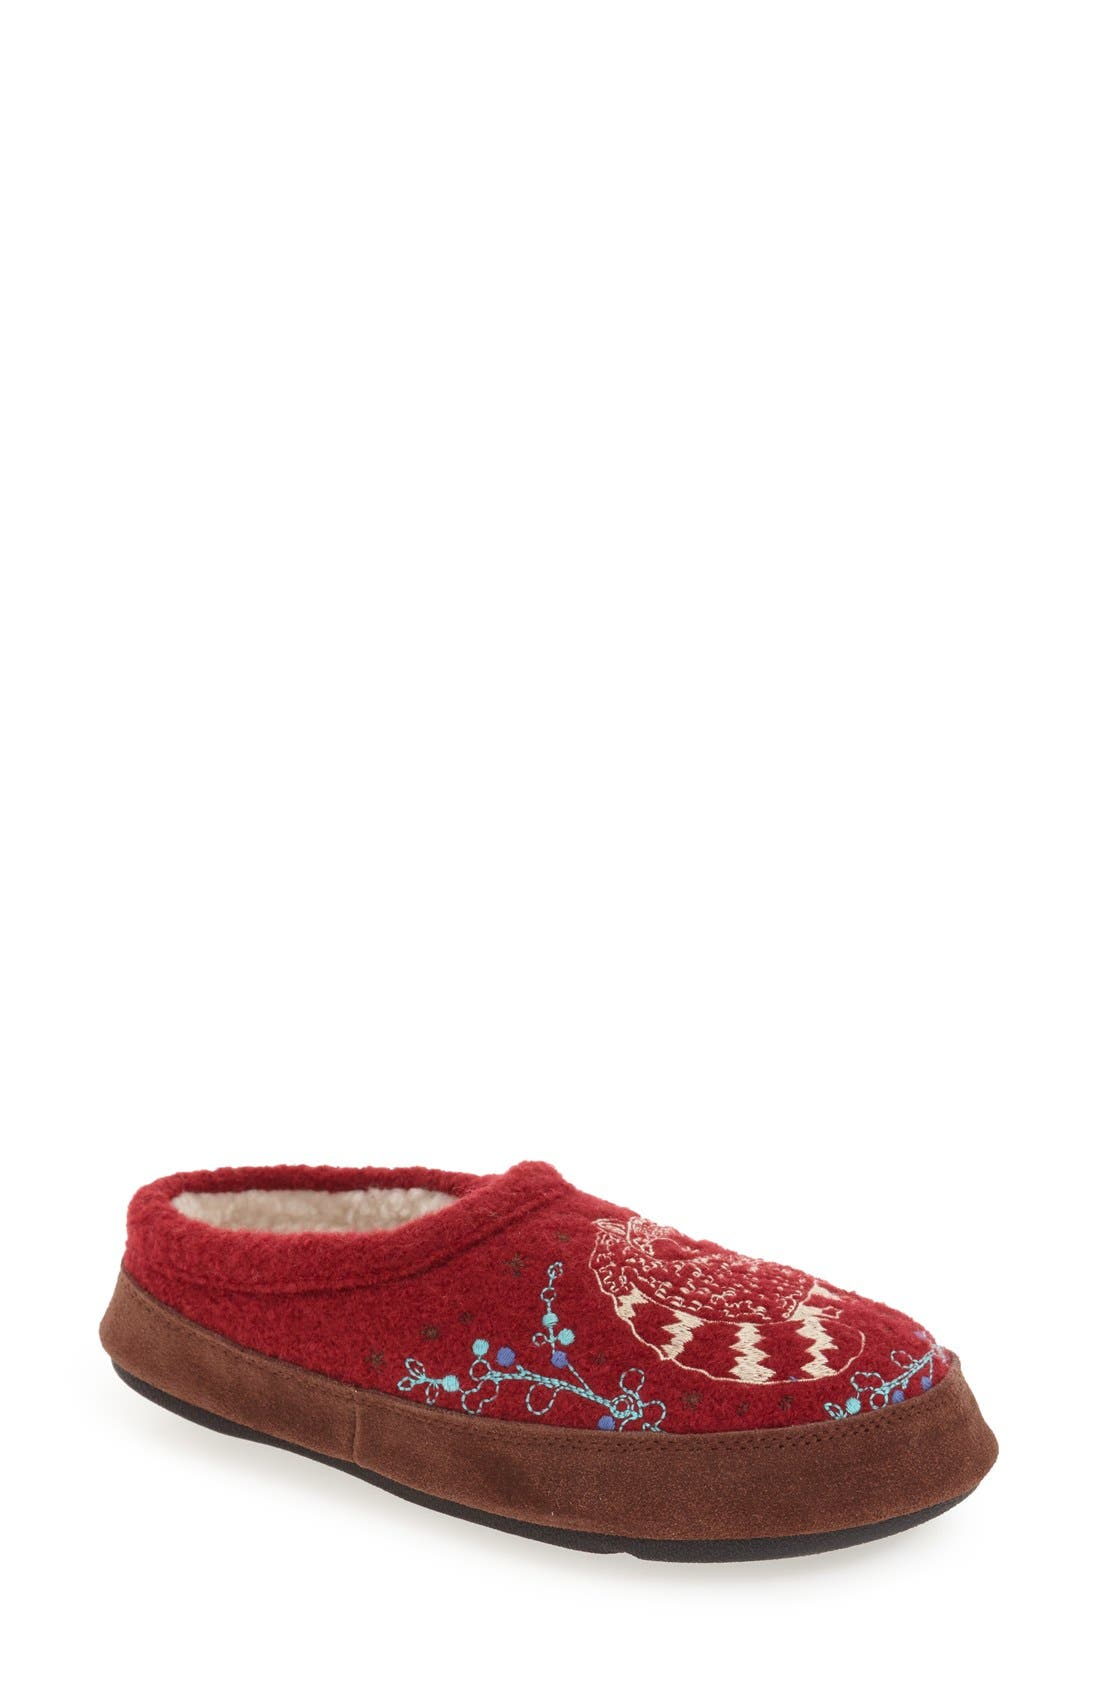 'Forest' Wool Mule Slipper,                             Main thumbnail 5, color,